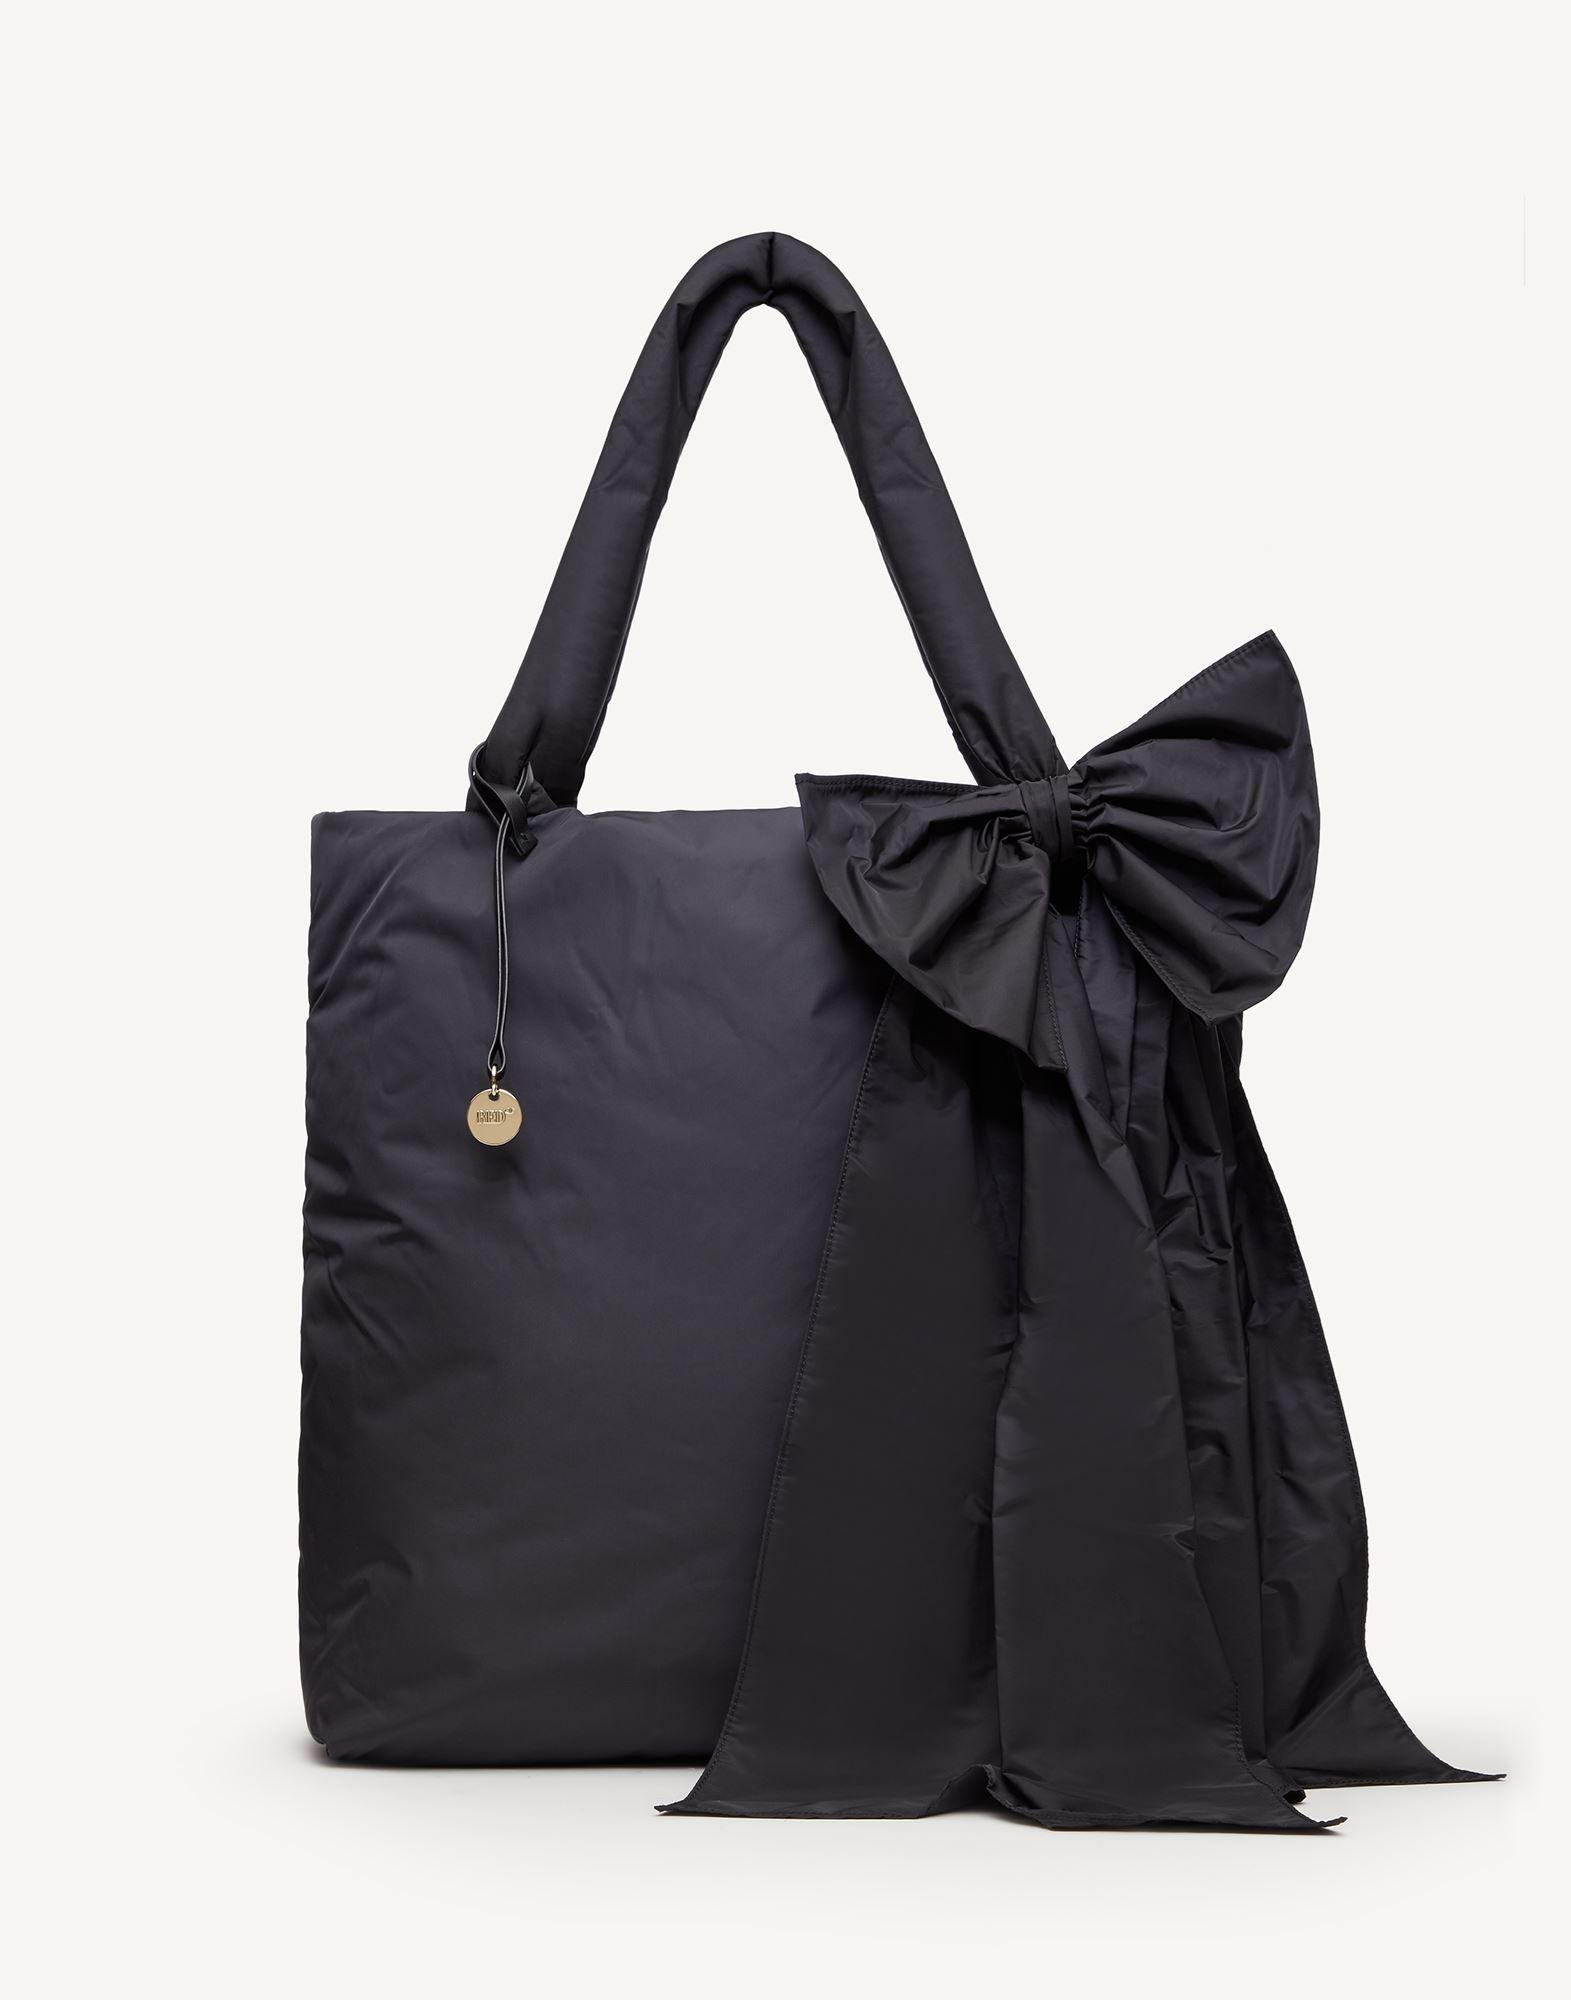 KNOT ME UP TOTE BAG